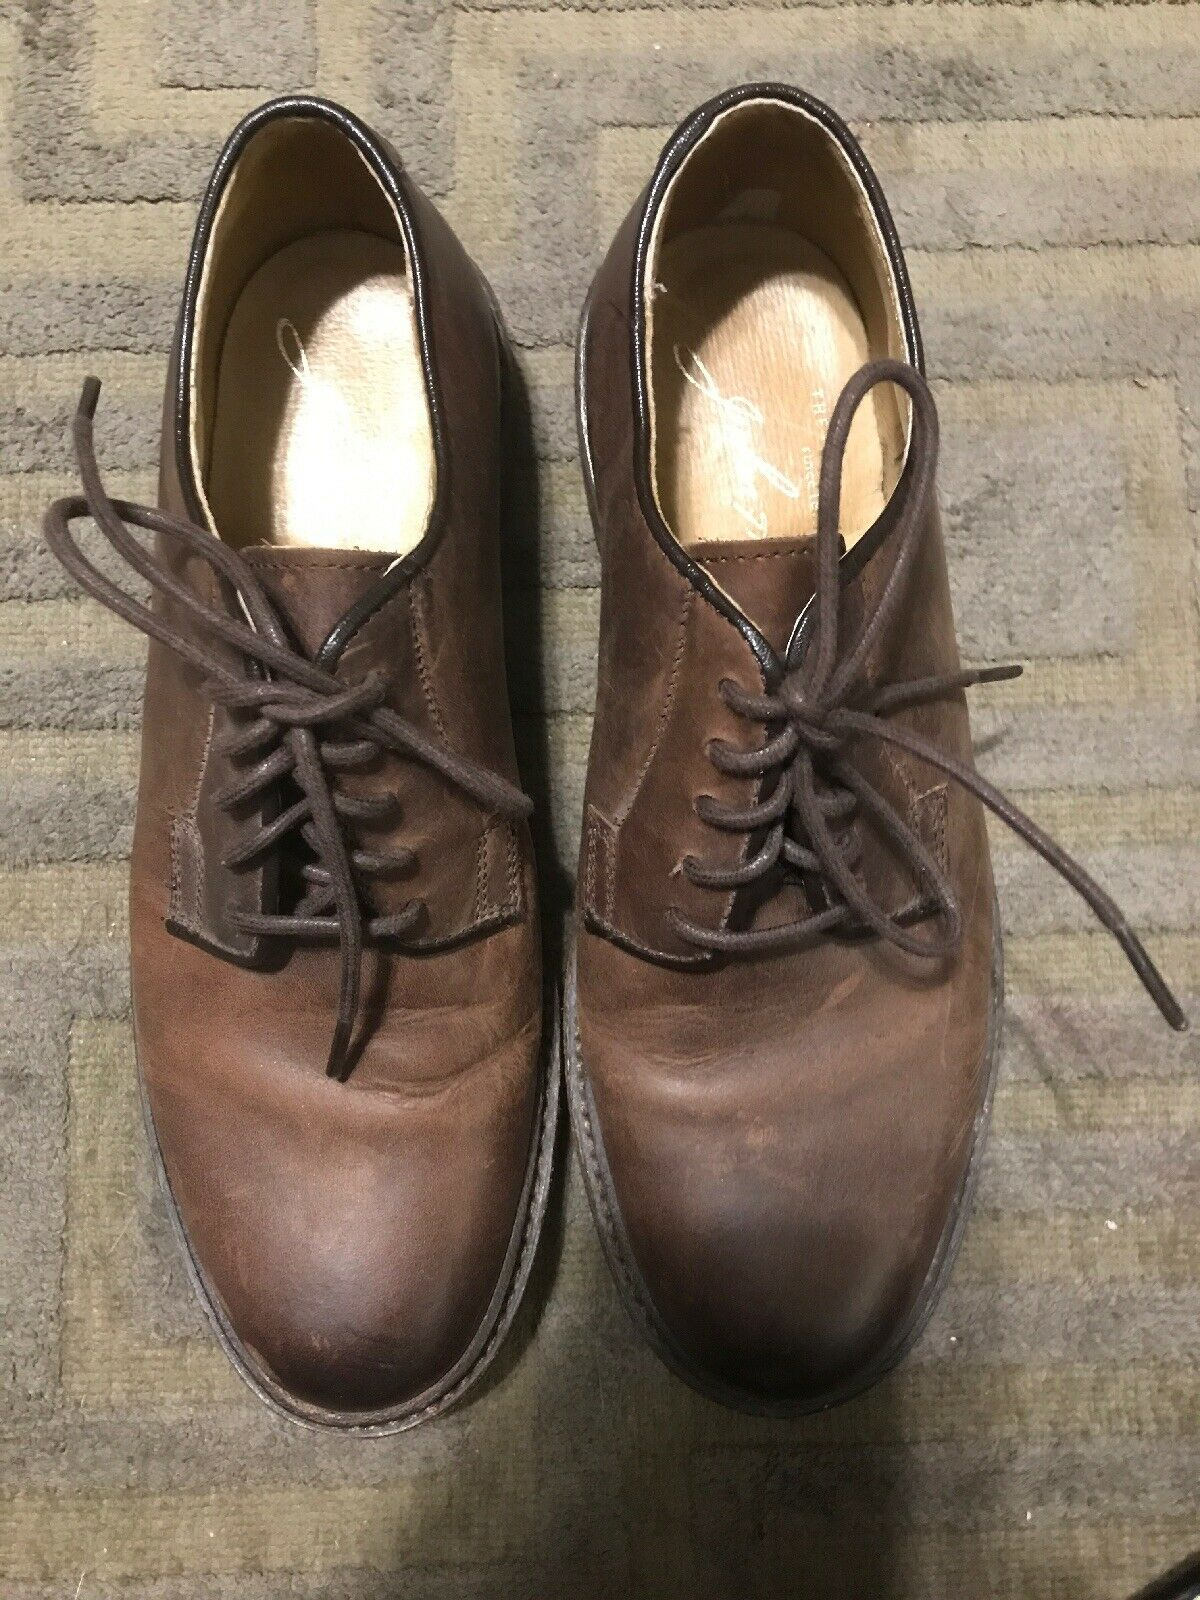 Frye Hommes Marron Chaussures US Taille 6.5 Femme 8.5